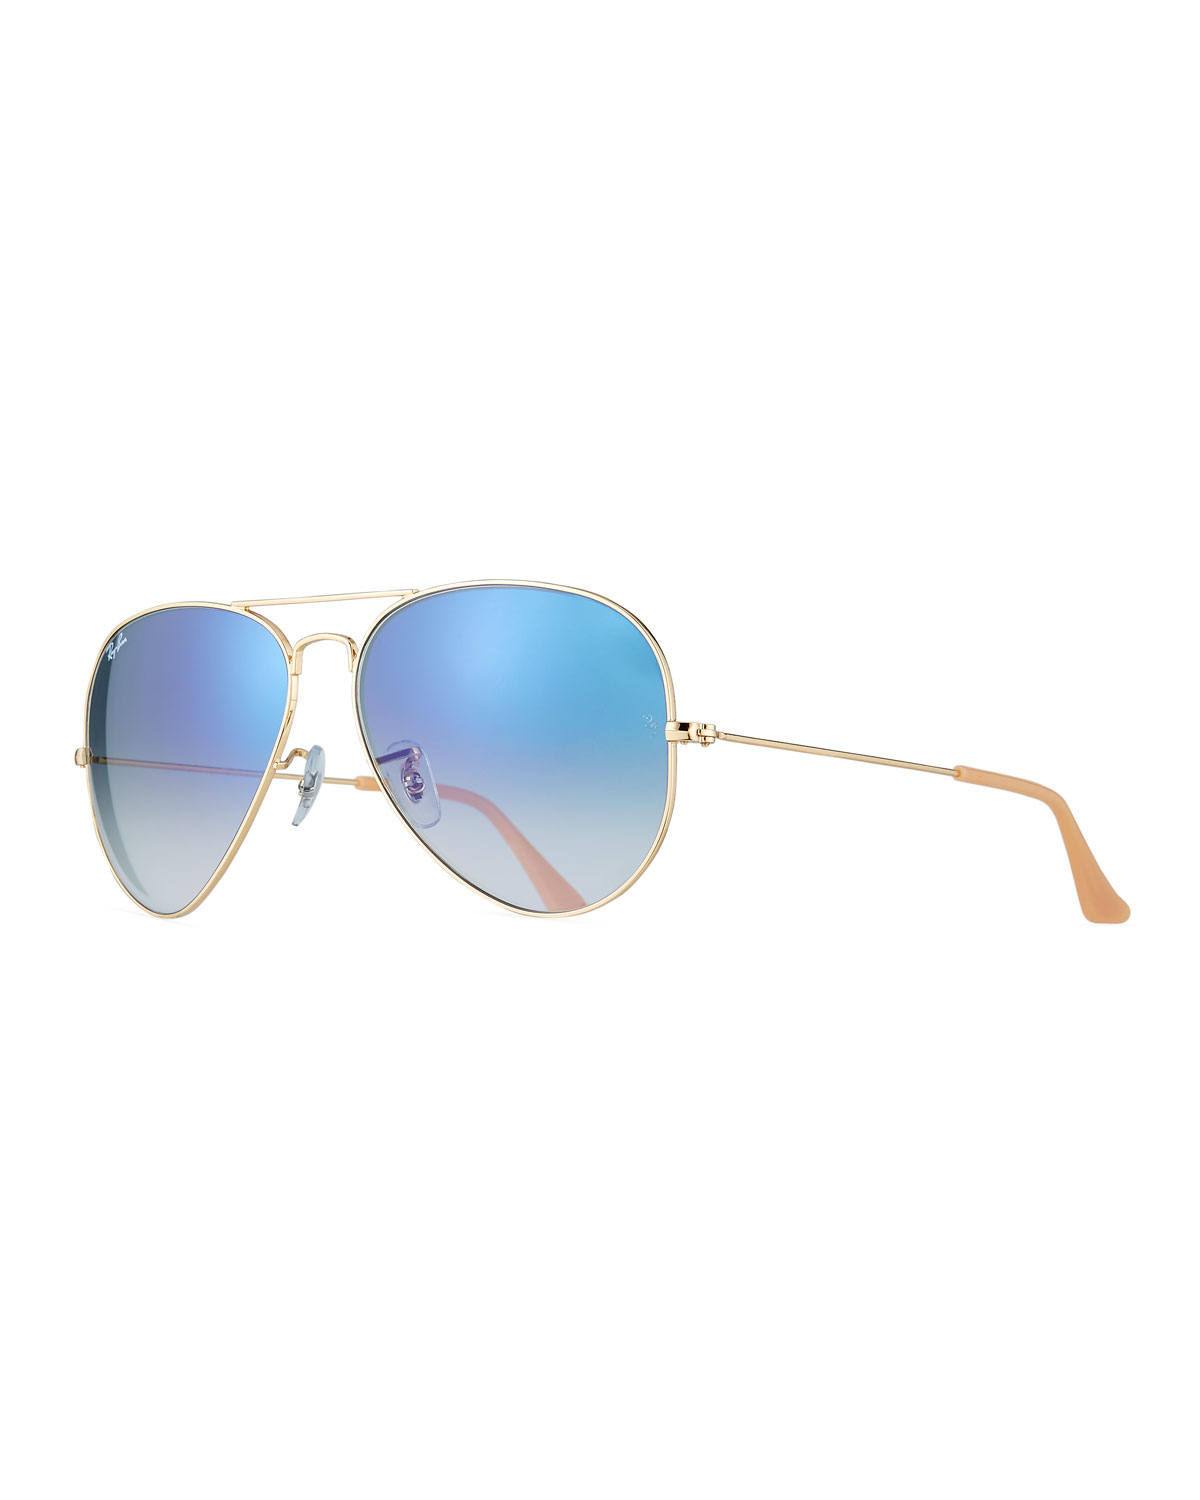 6c613cdc9cd Ray-Ban Gradient Aviator Sunglasses